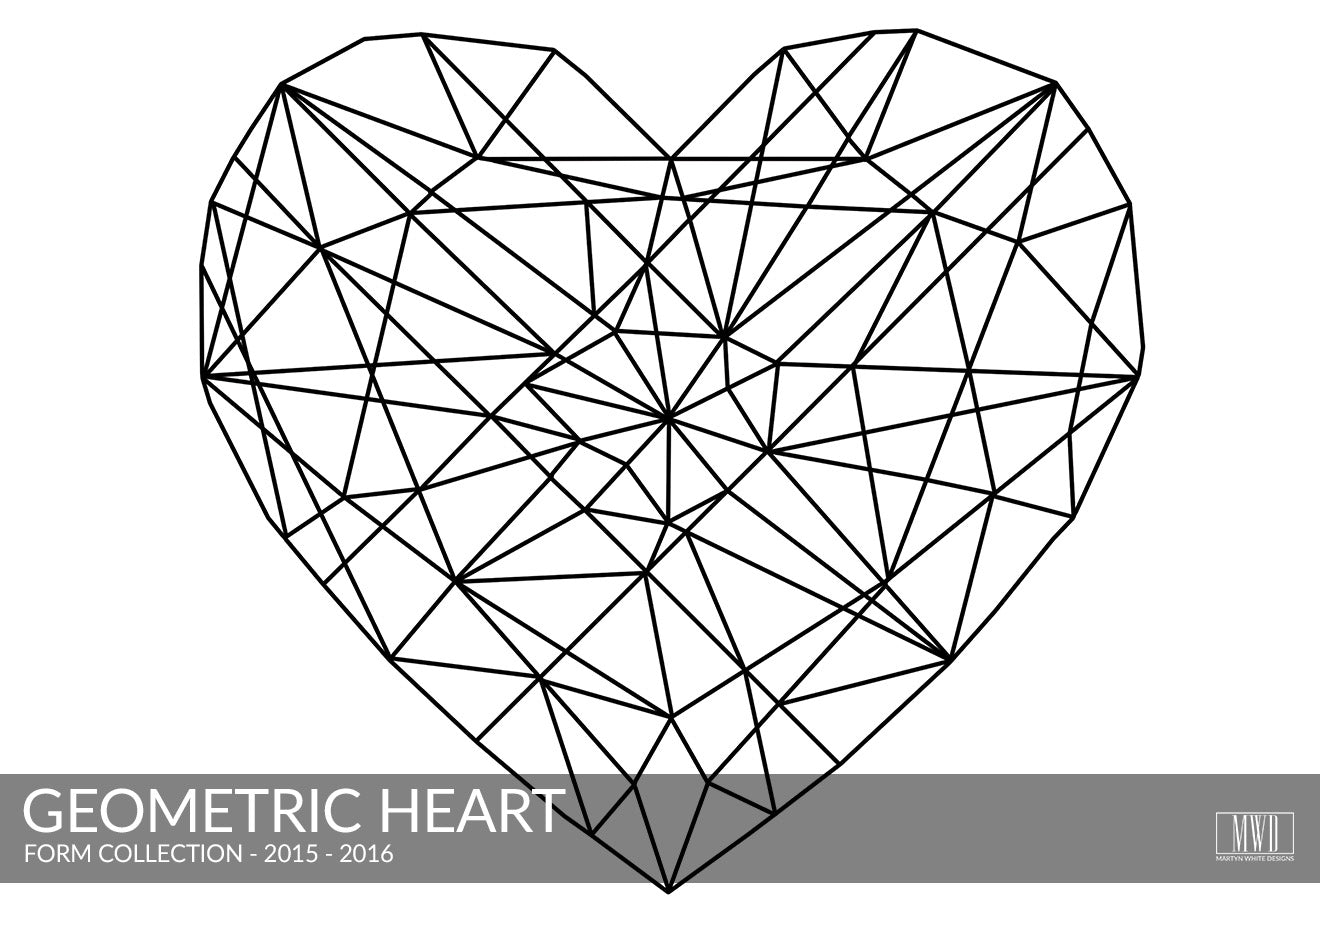 Geometric Heart black and white art print